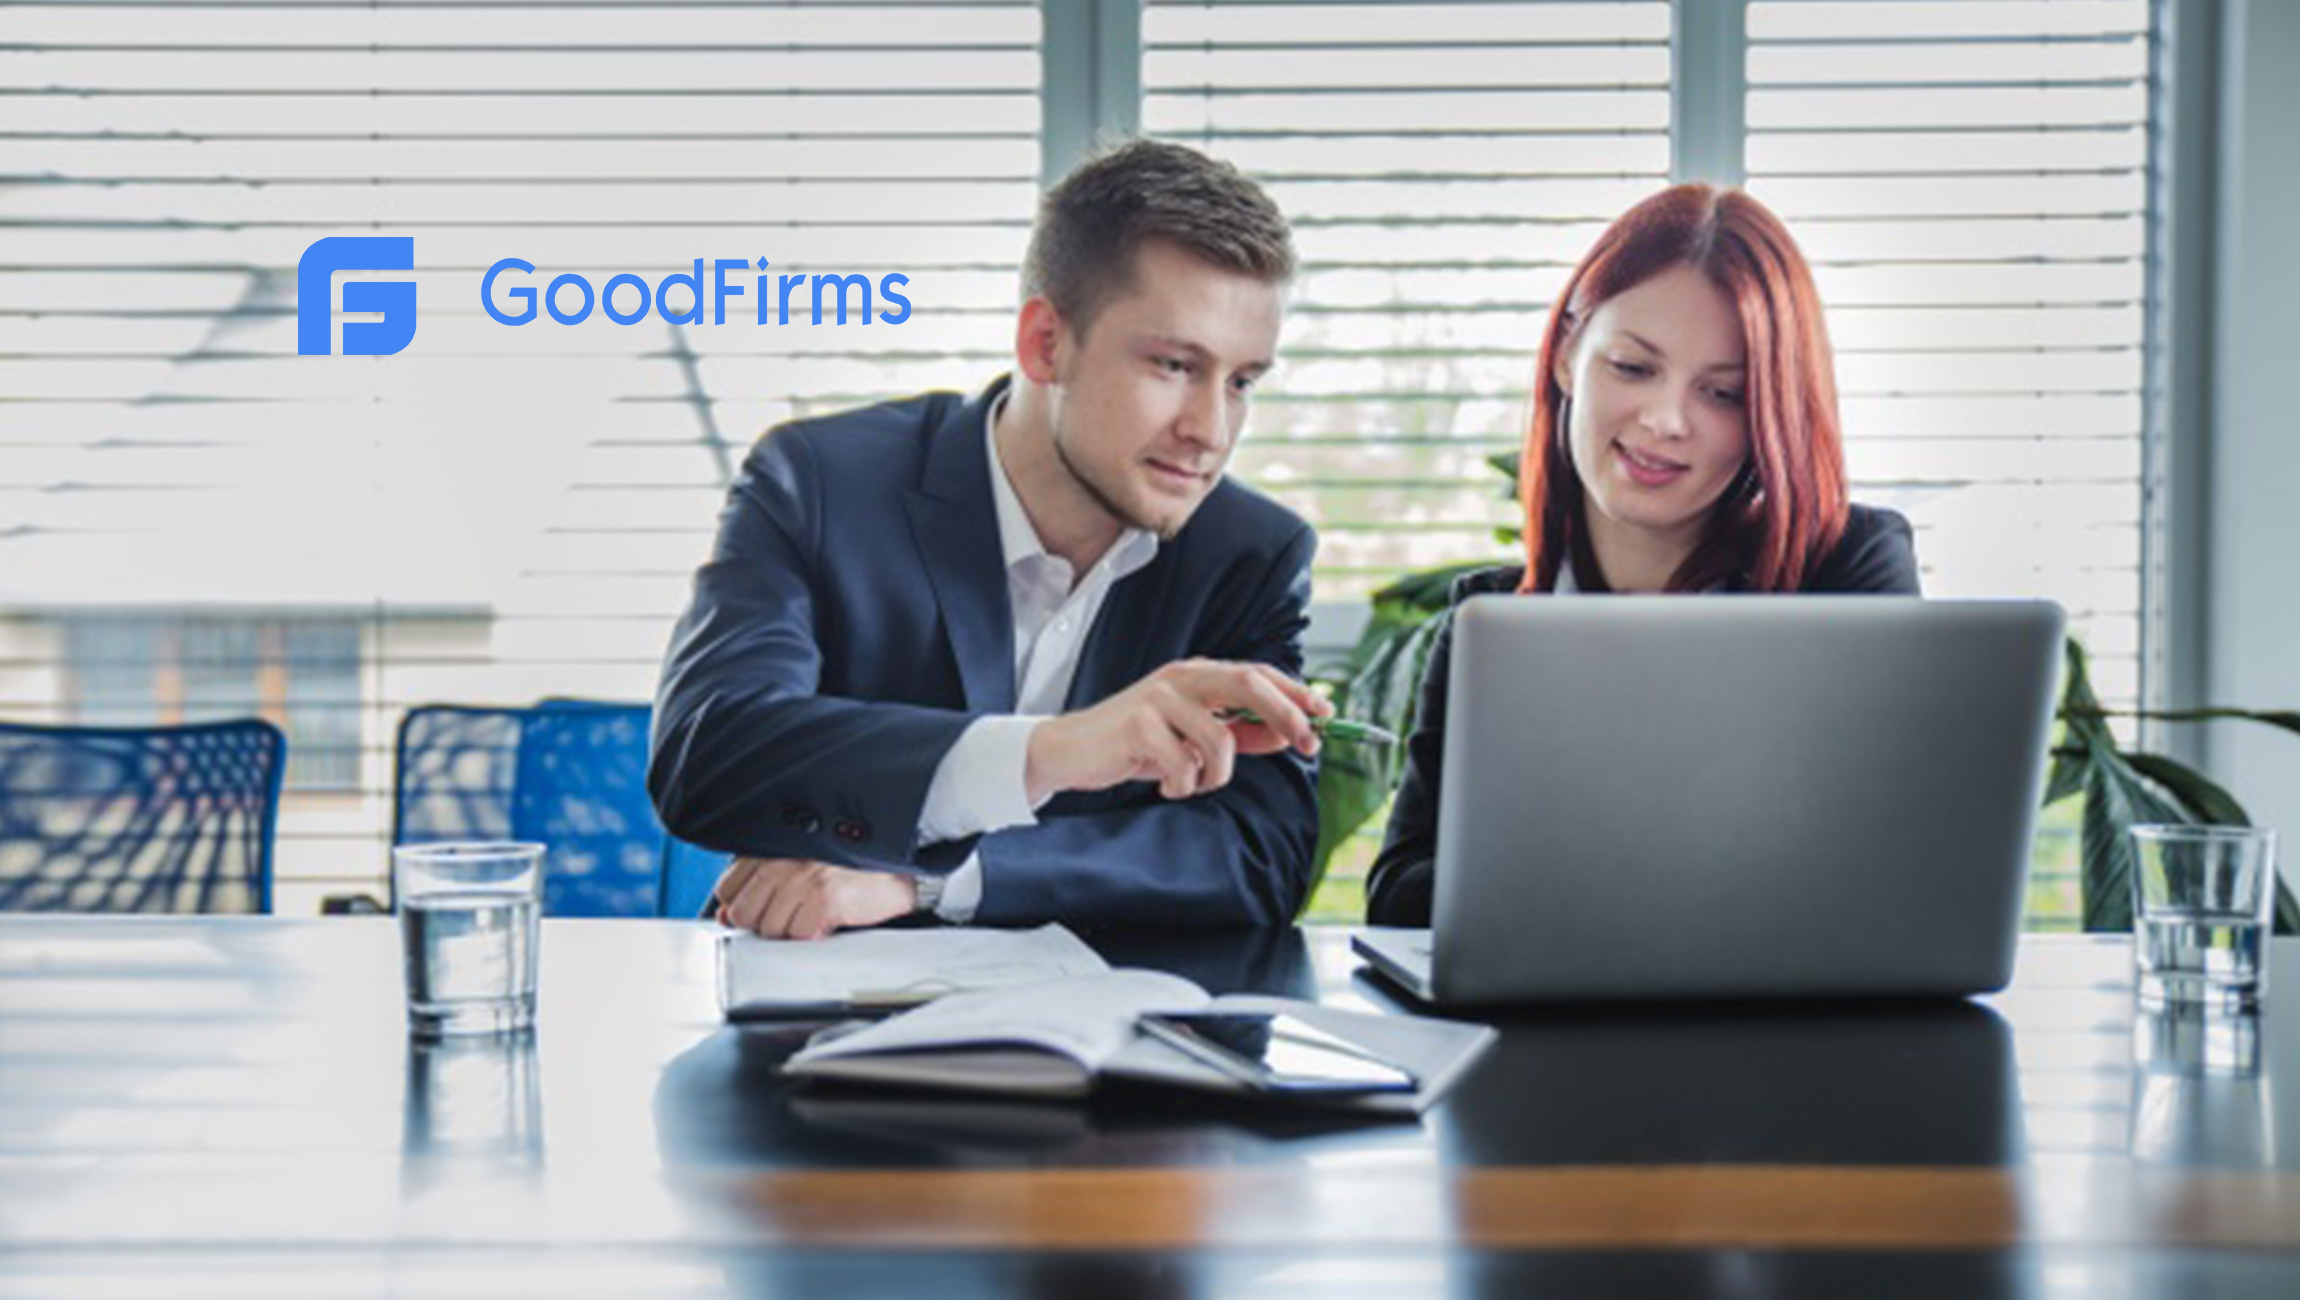 GoodFirms Research Unveils Trustworthy Technical Software Providers for Diverse Industries